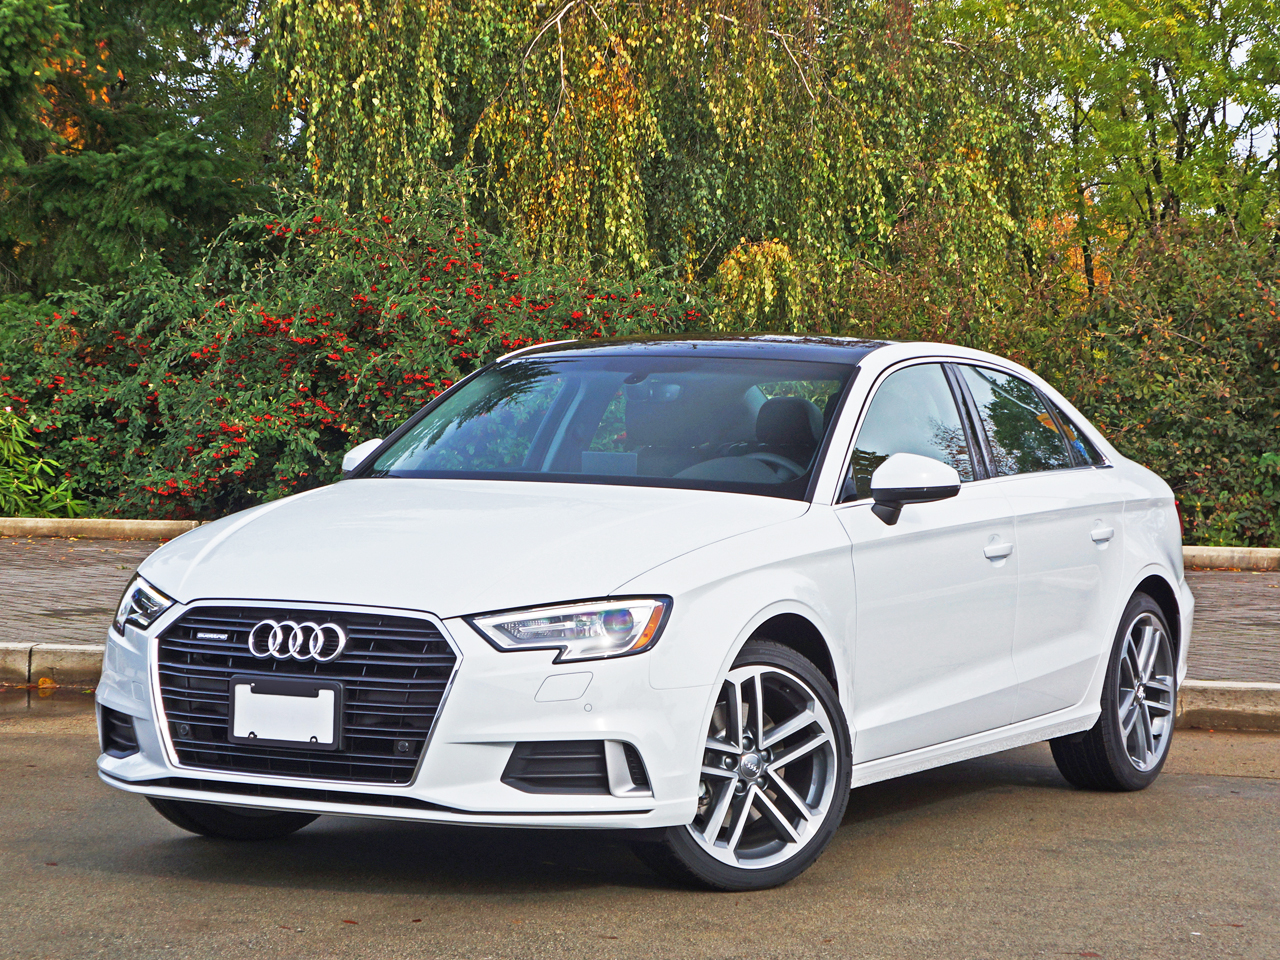 2017 Audi A3 20 Tfsi Quattro Progressiv Road Test Review